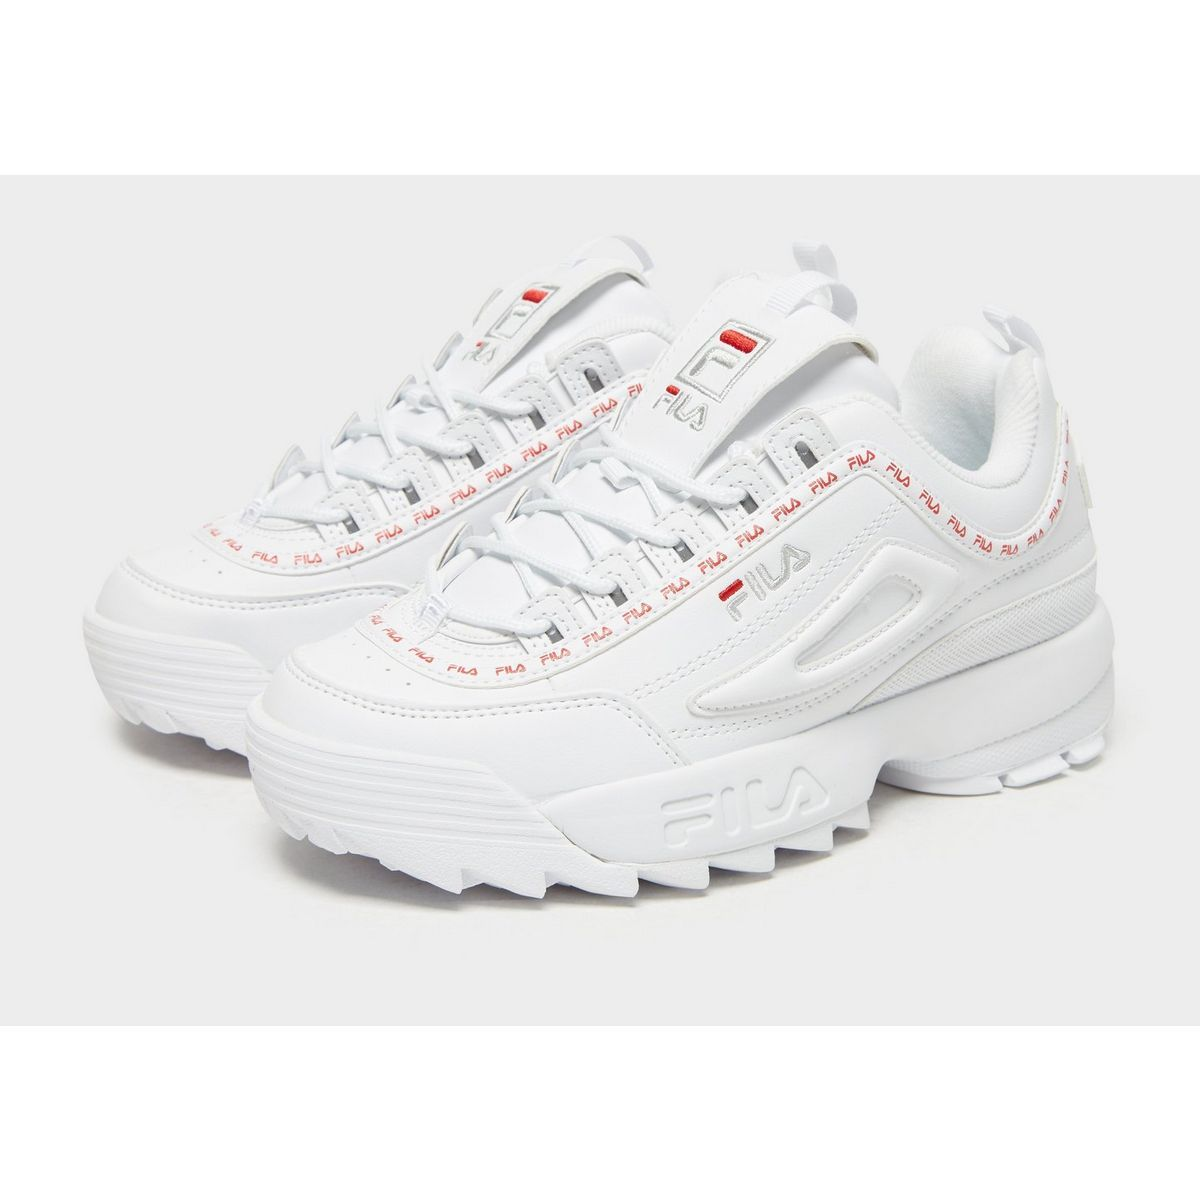 Fila Disruptor II Repeat Women's | fila in 2019 | Dream ...